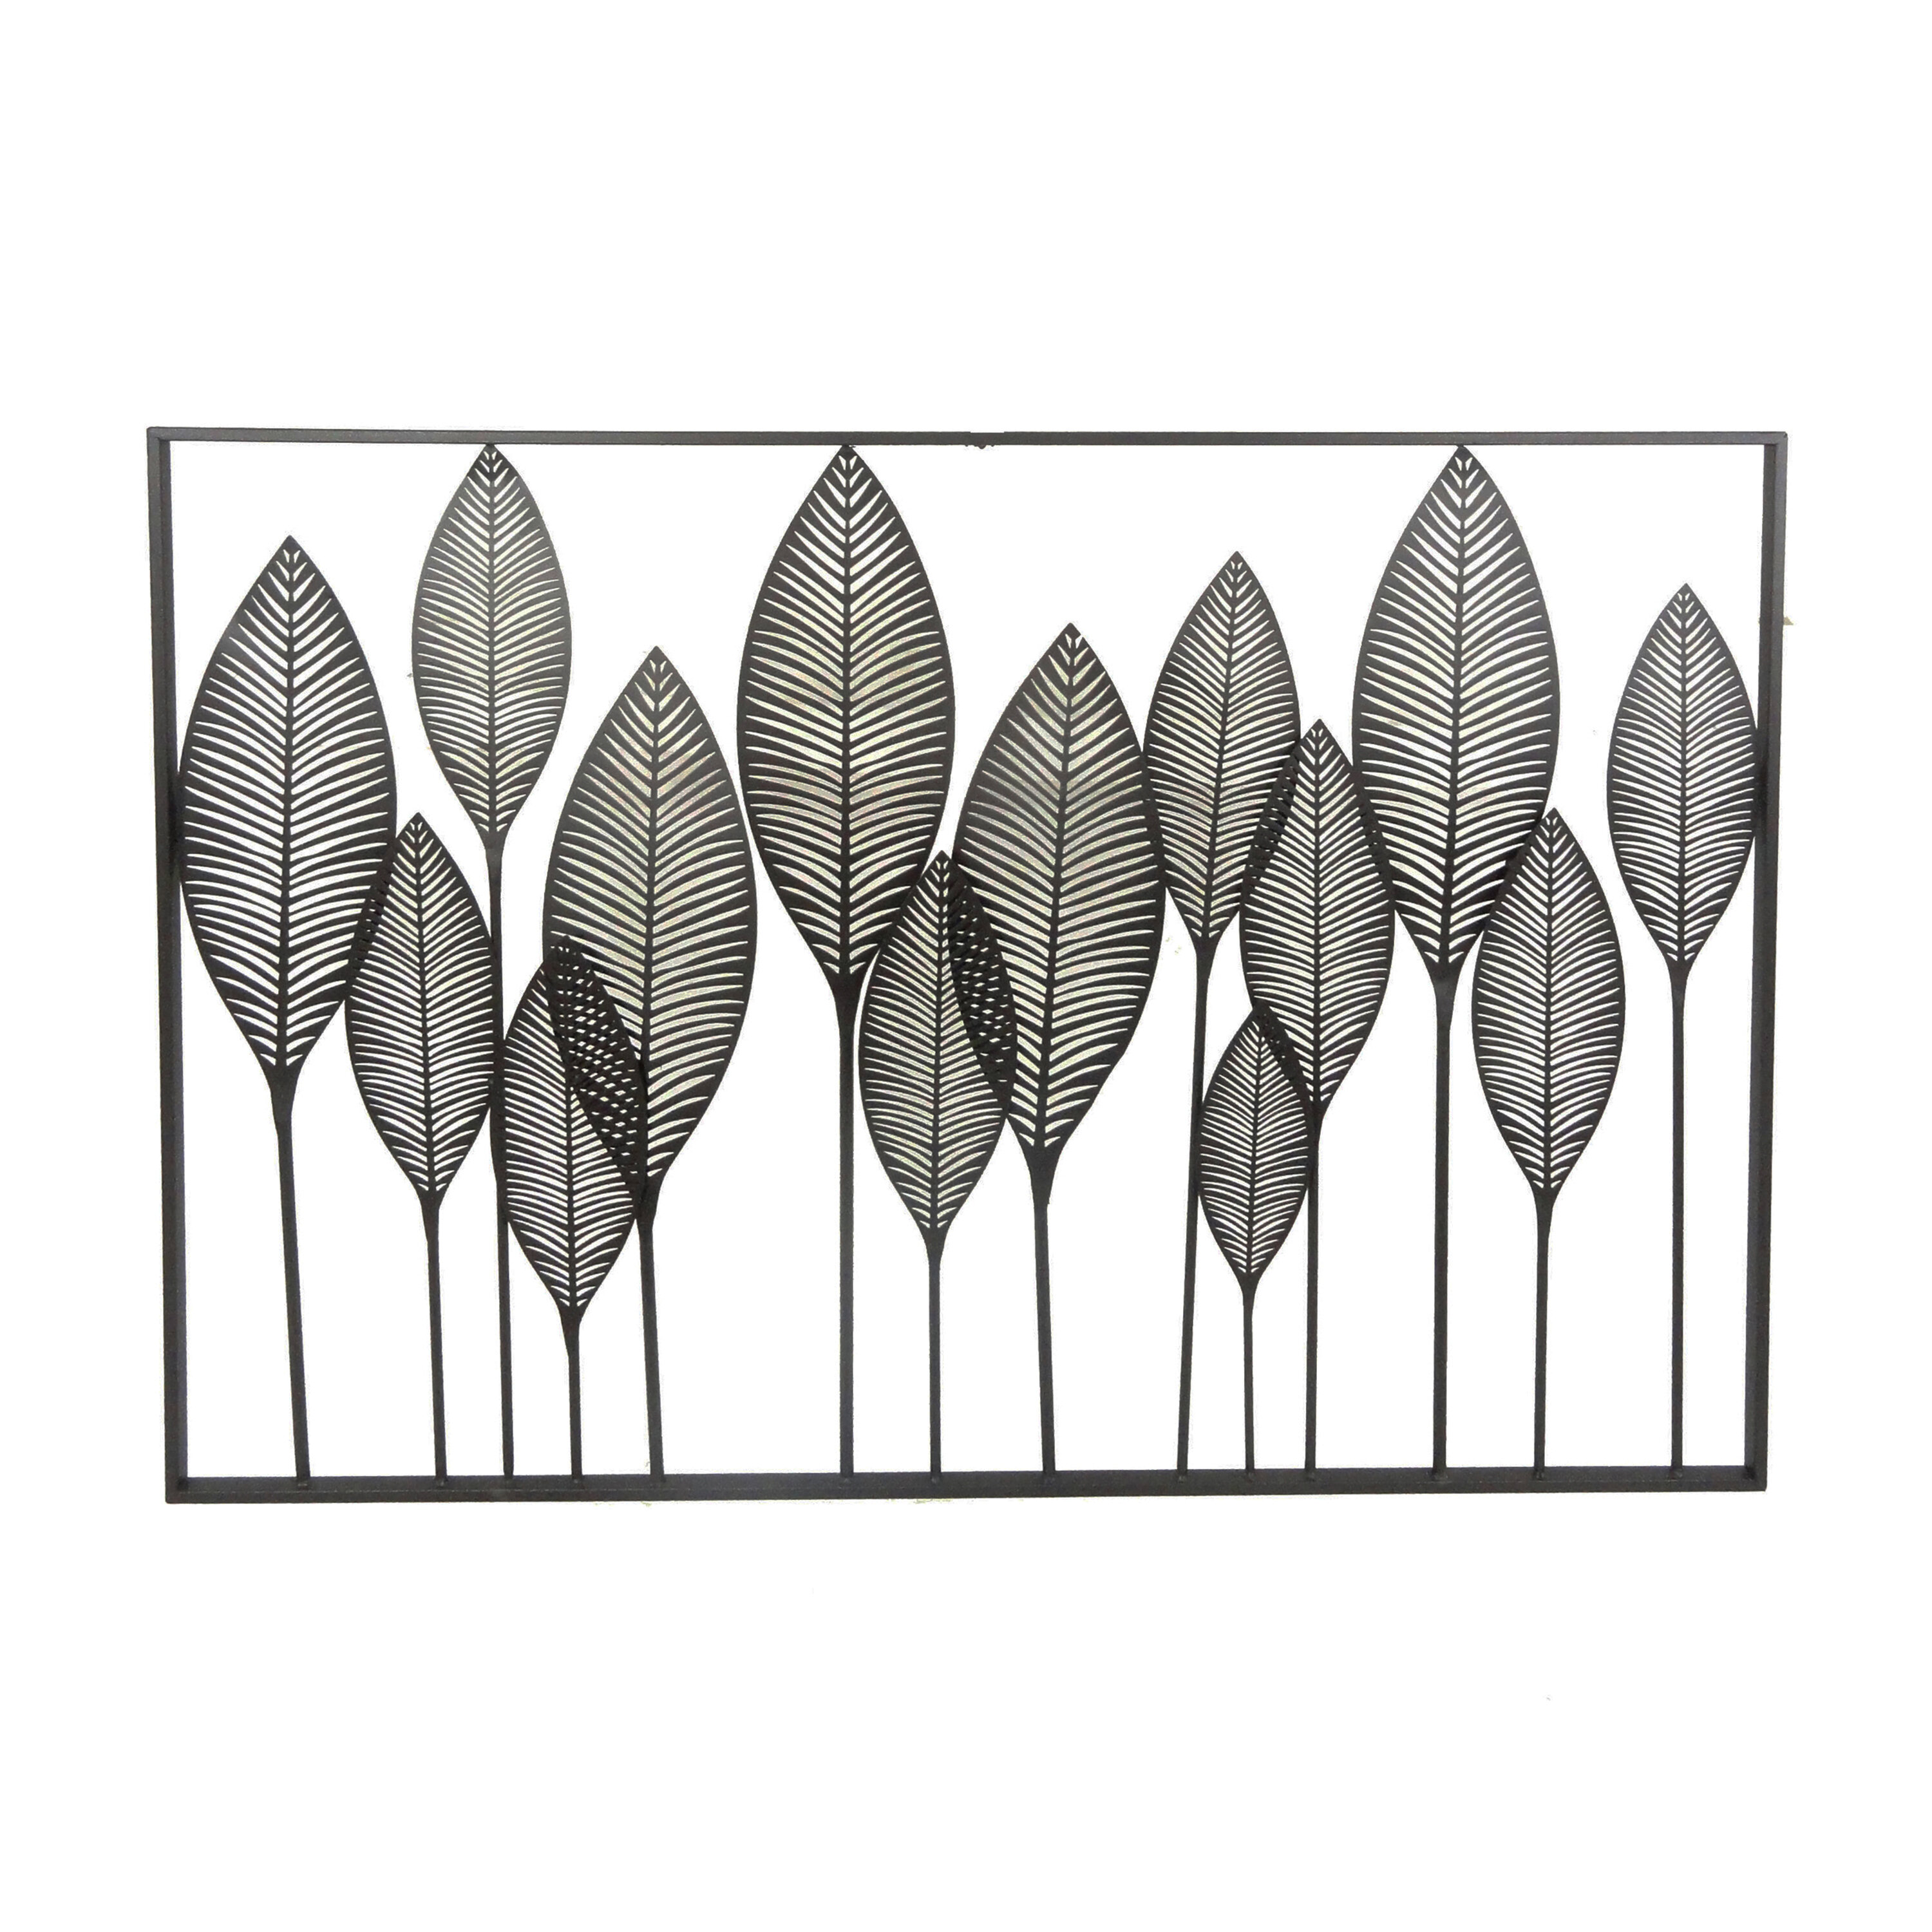 reviews decor leaf pdp main joss d home wall metal cor